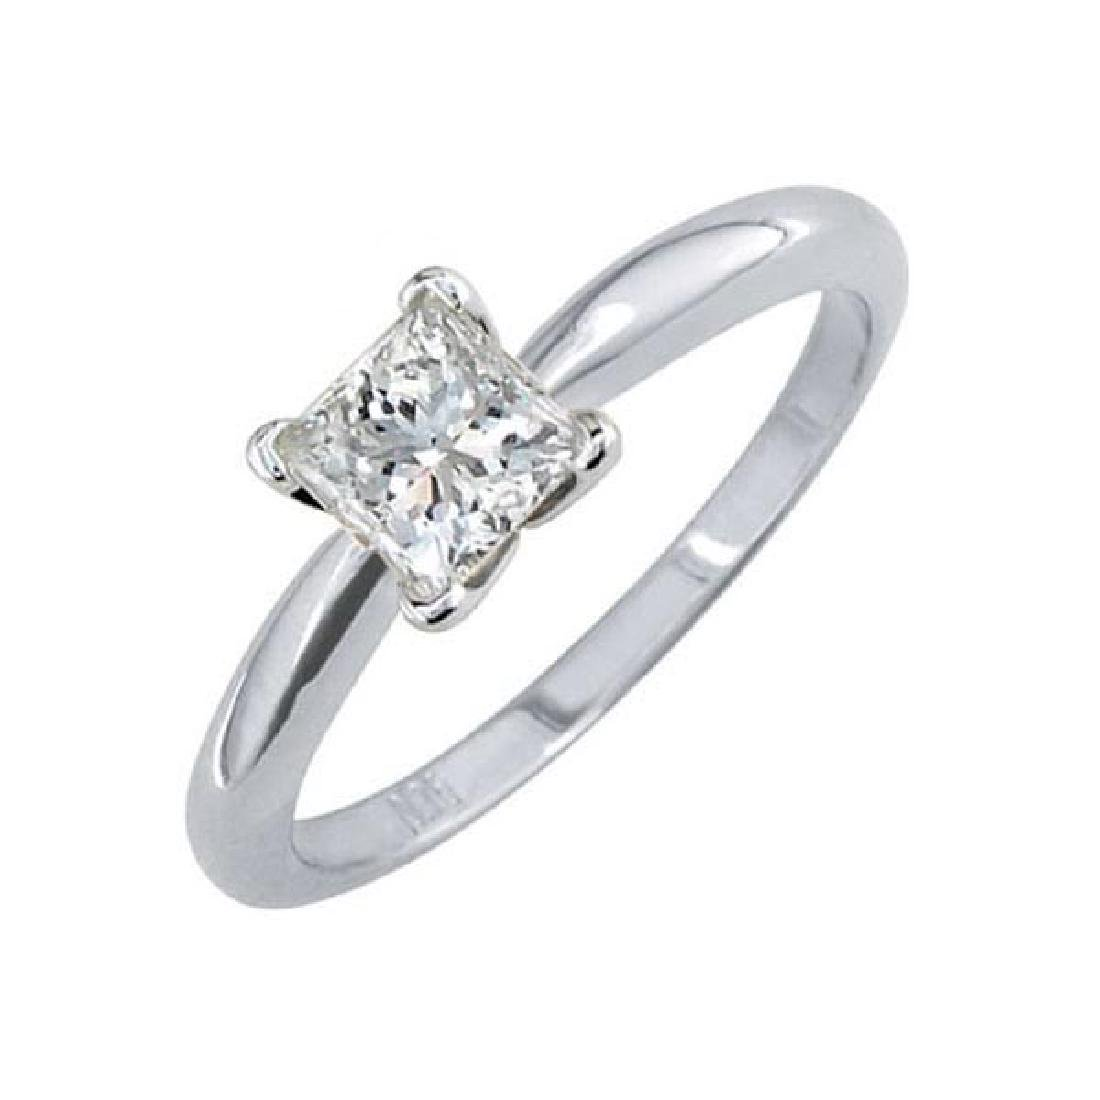 Certified 0.4 CTW Princess Diamond Solitaire 14k Ring F